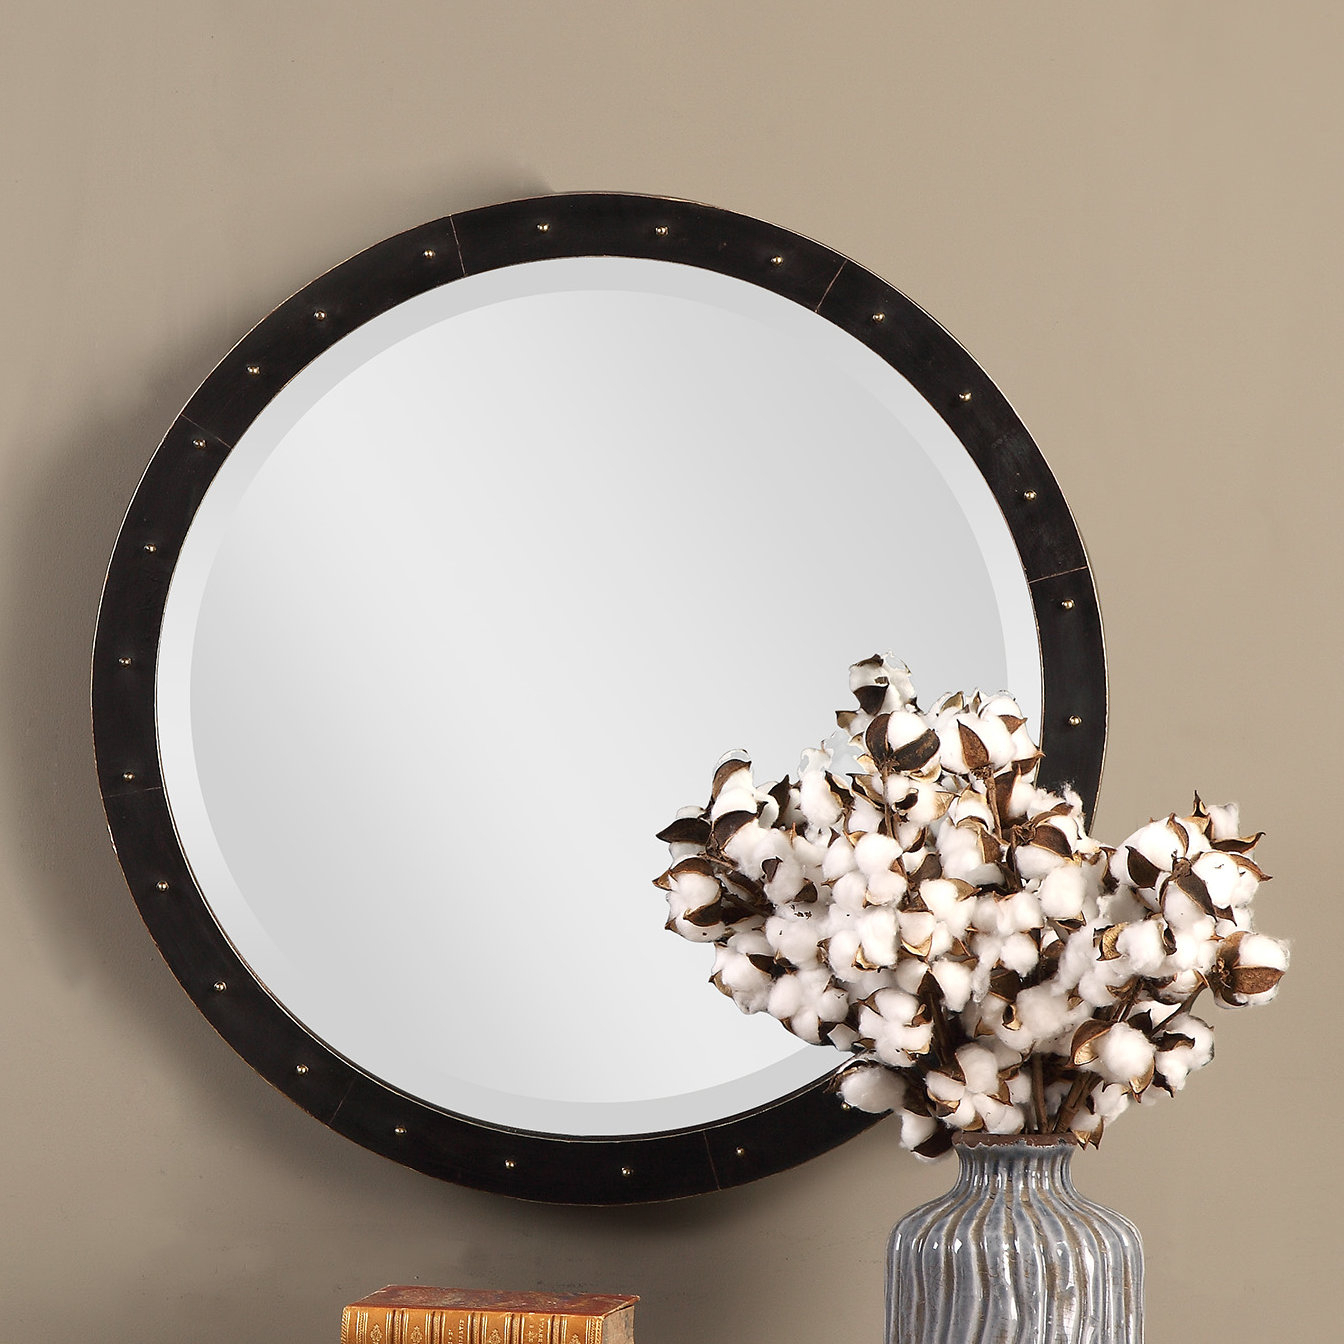 2020 Austin Industrial Accent Mirrors With Regard To Burt Round Industrial Accent Mirror (View 1 of 20)